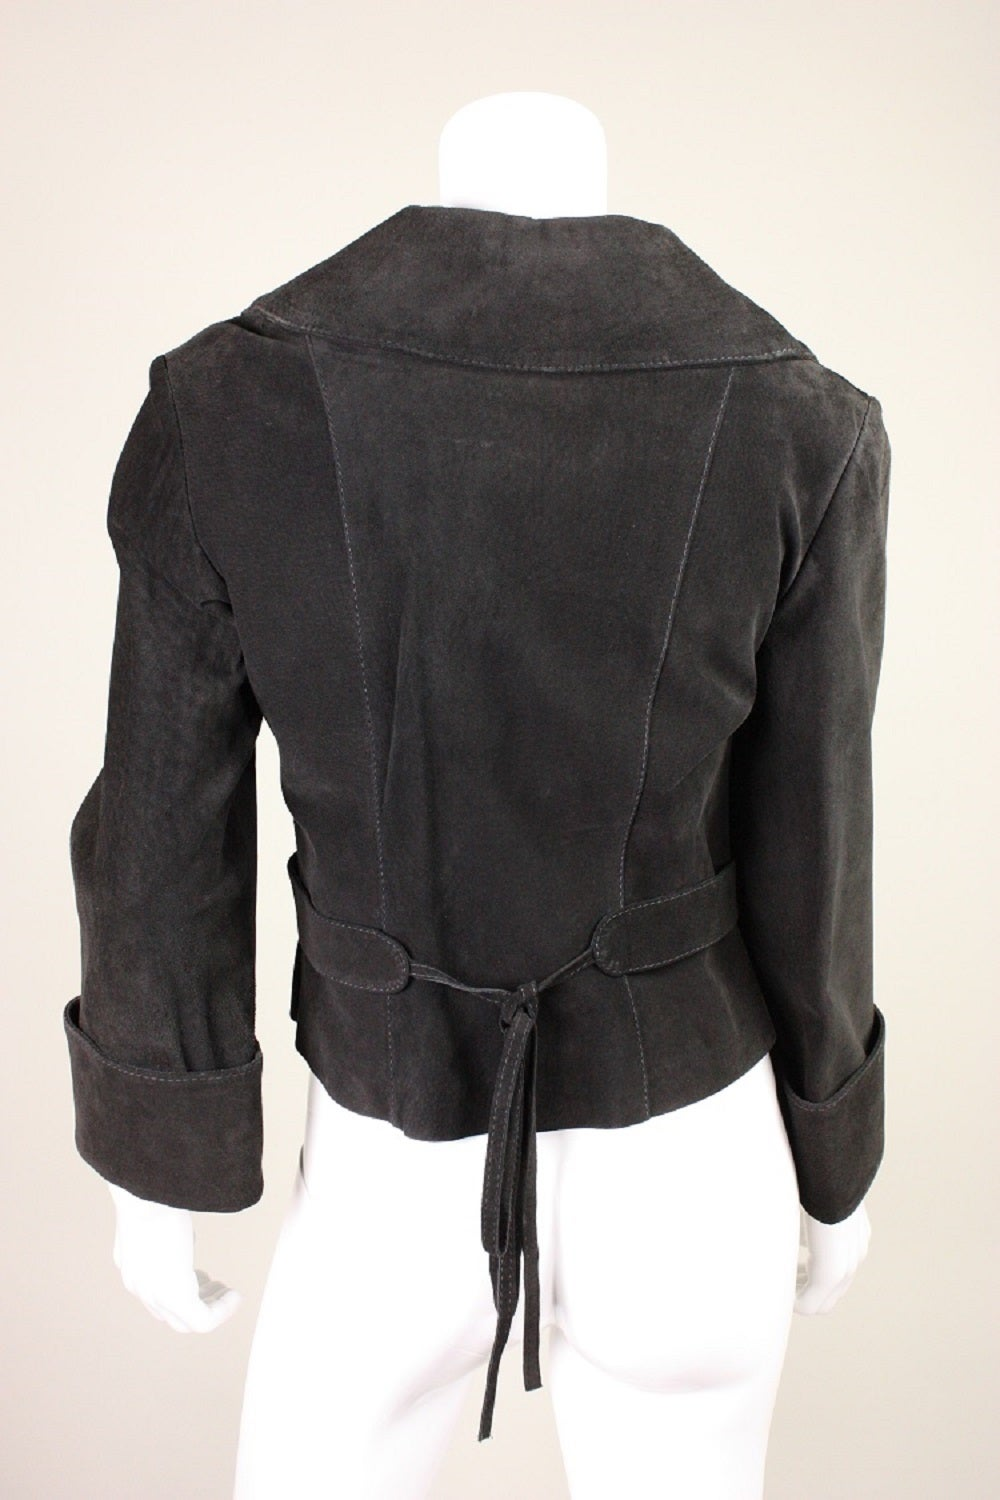 1970's Bill Gibb Suede Jacket & Vest with Embroidery 4